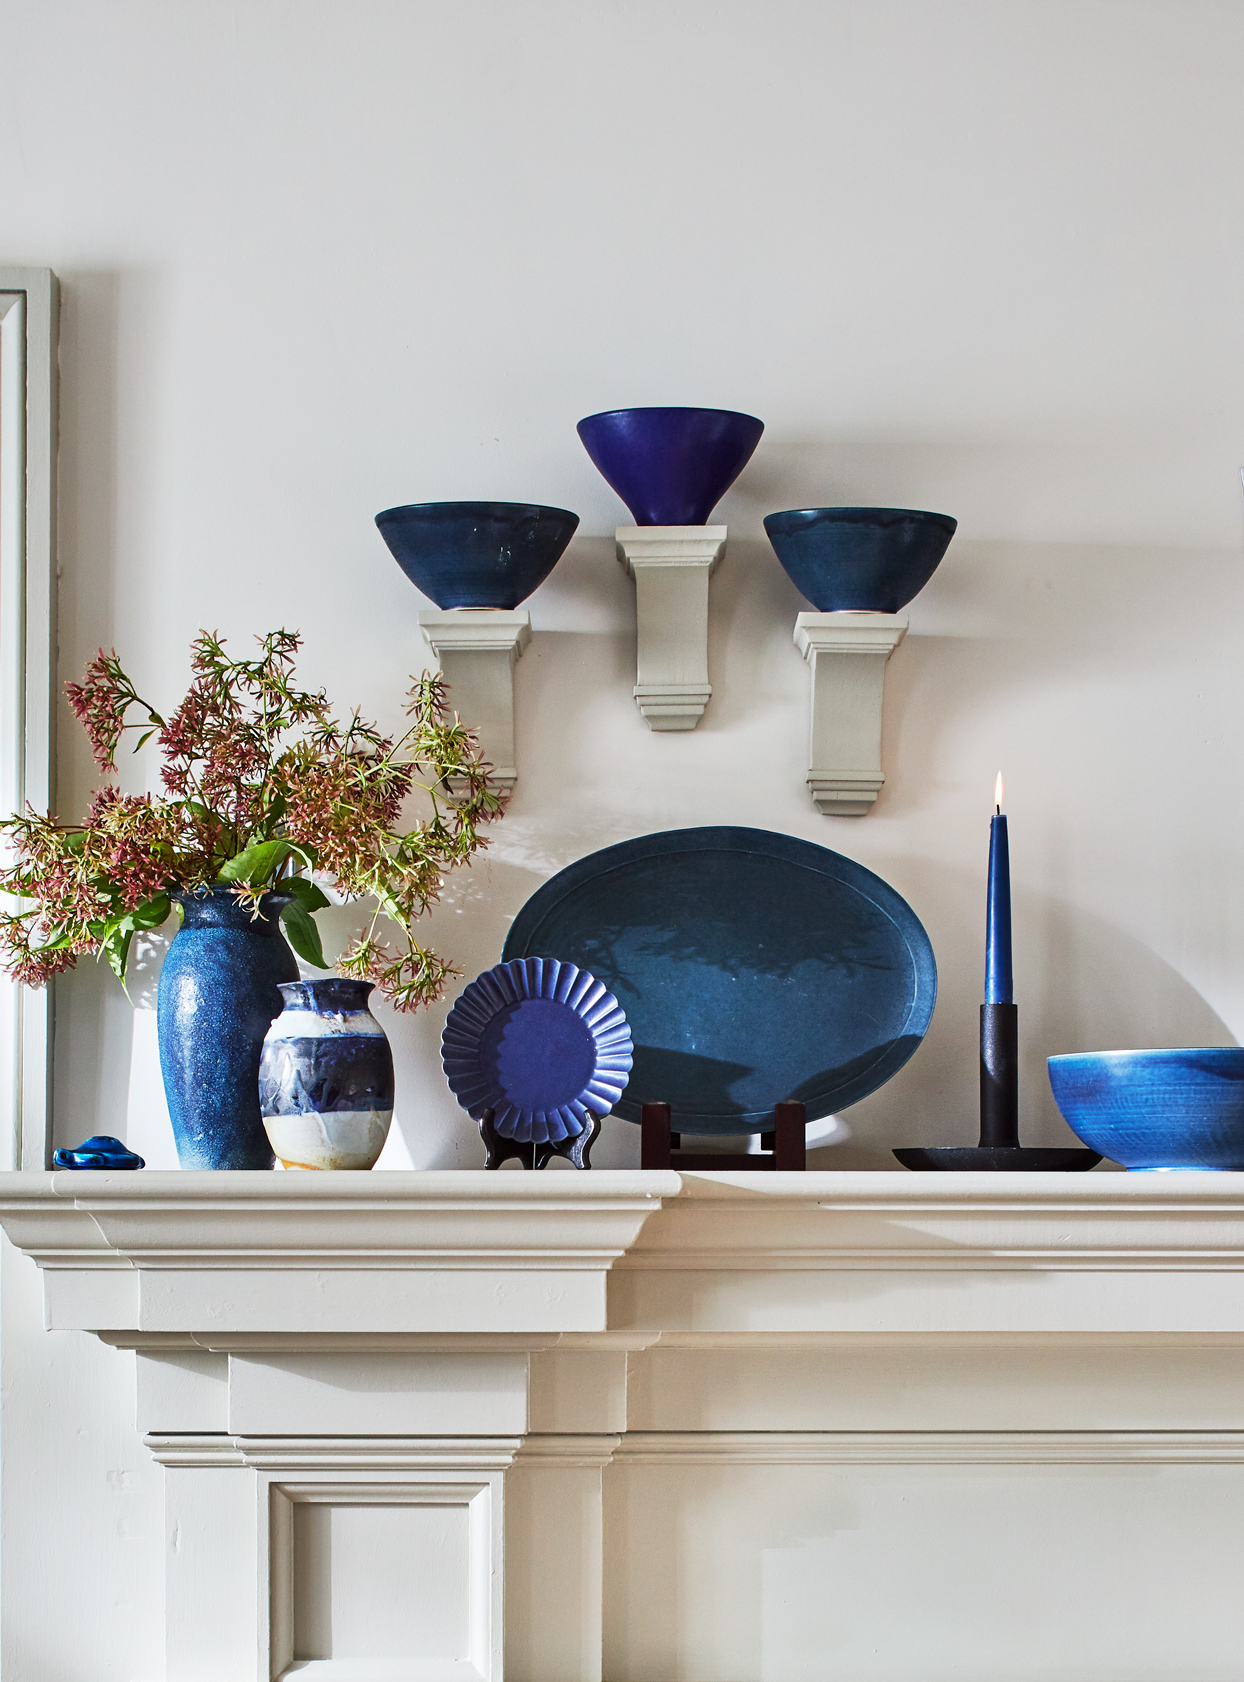 pottery in navy, cobalt, and indigo